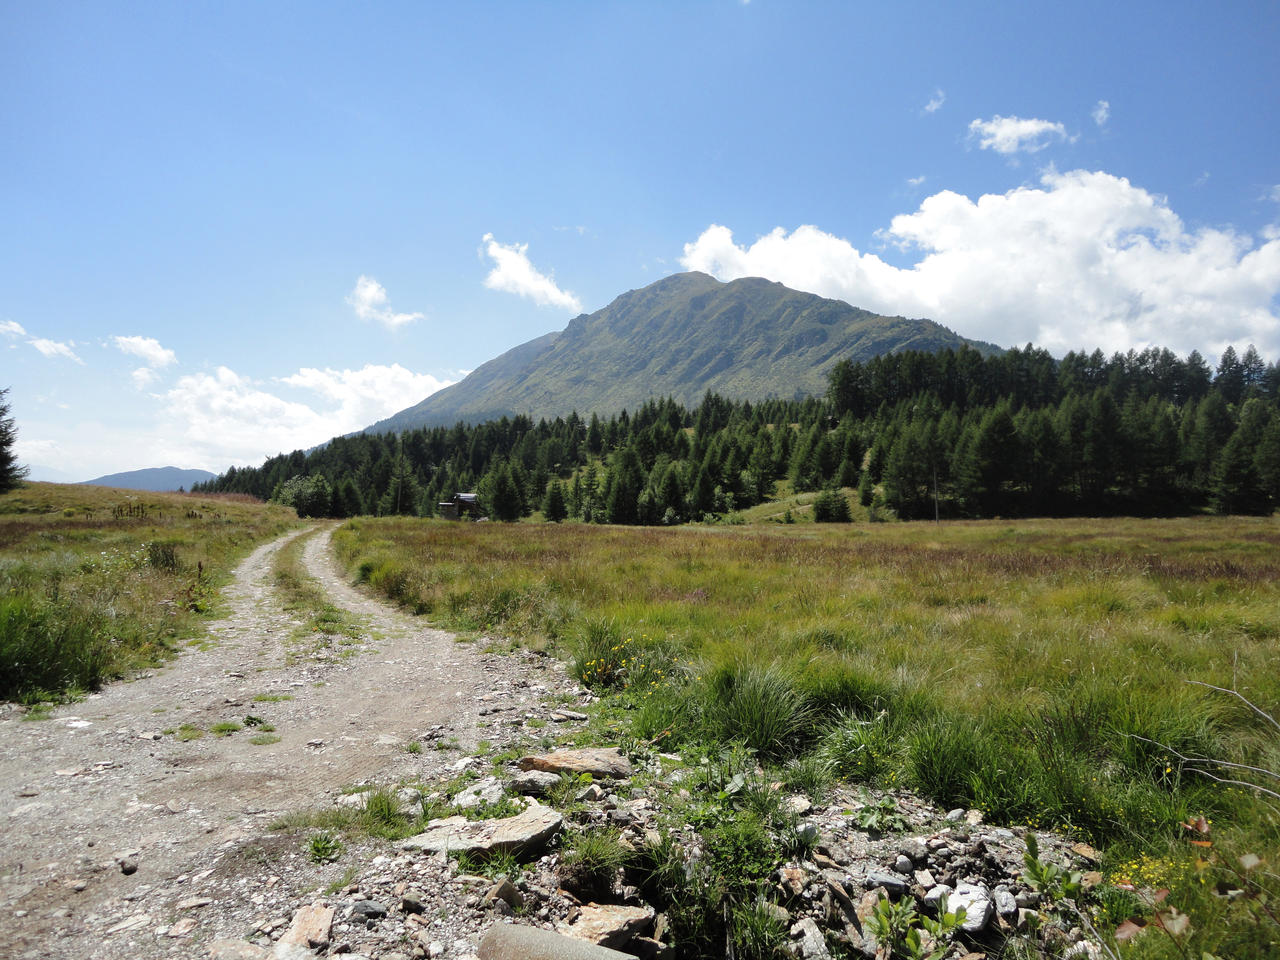 Dirty road on mountains by Simbores